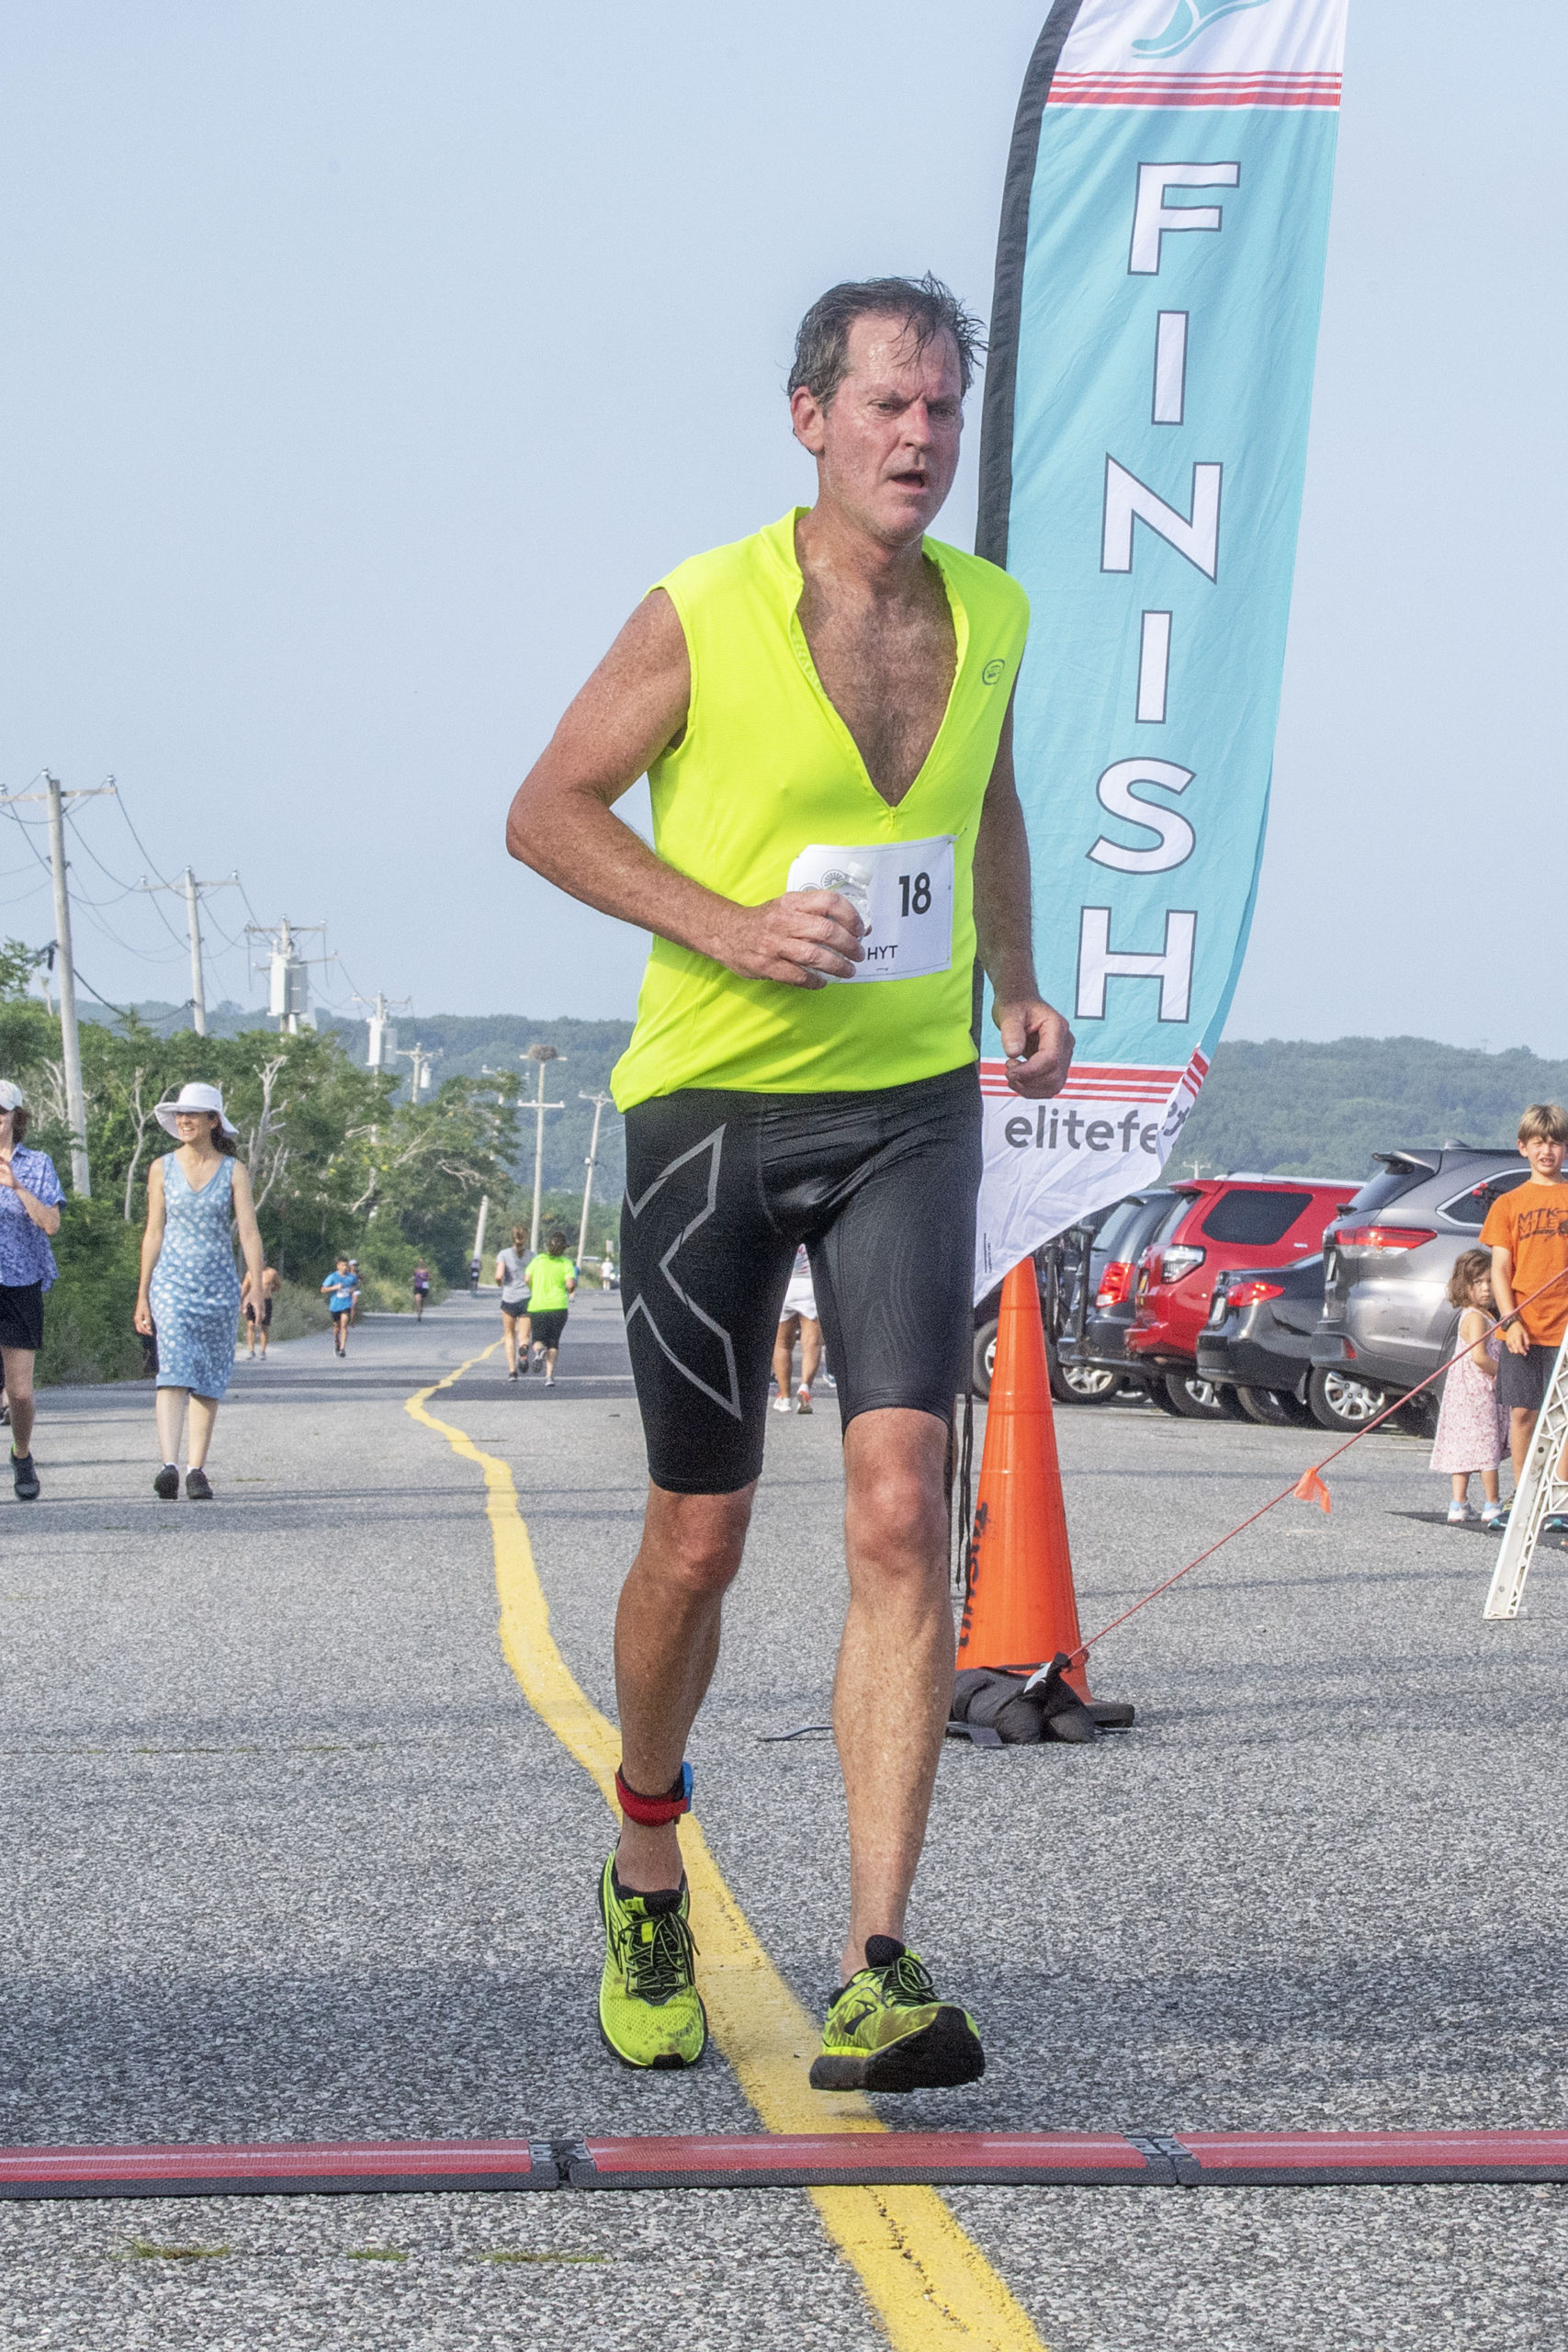 Bob Bottini was the overall winner of the Hamptons Young at Heart Triathlon, held at Long Beach in Sag Harbor on Saturday, July 17.